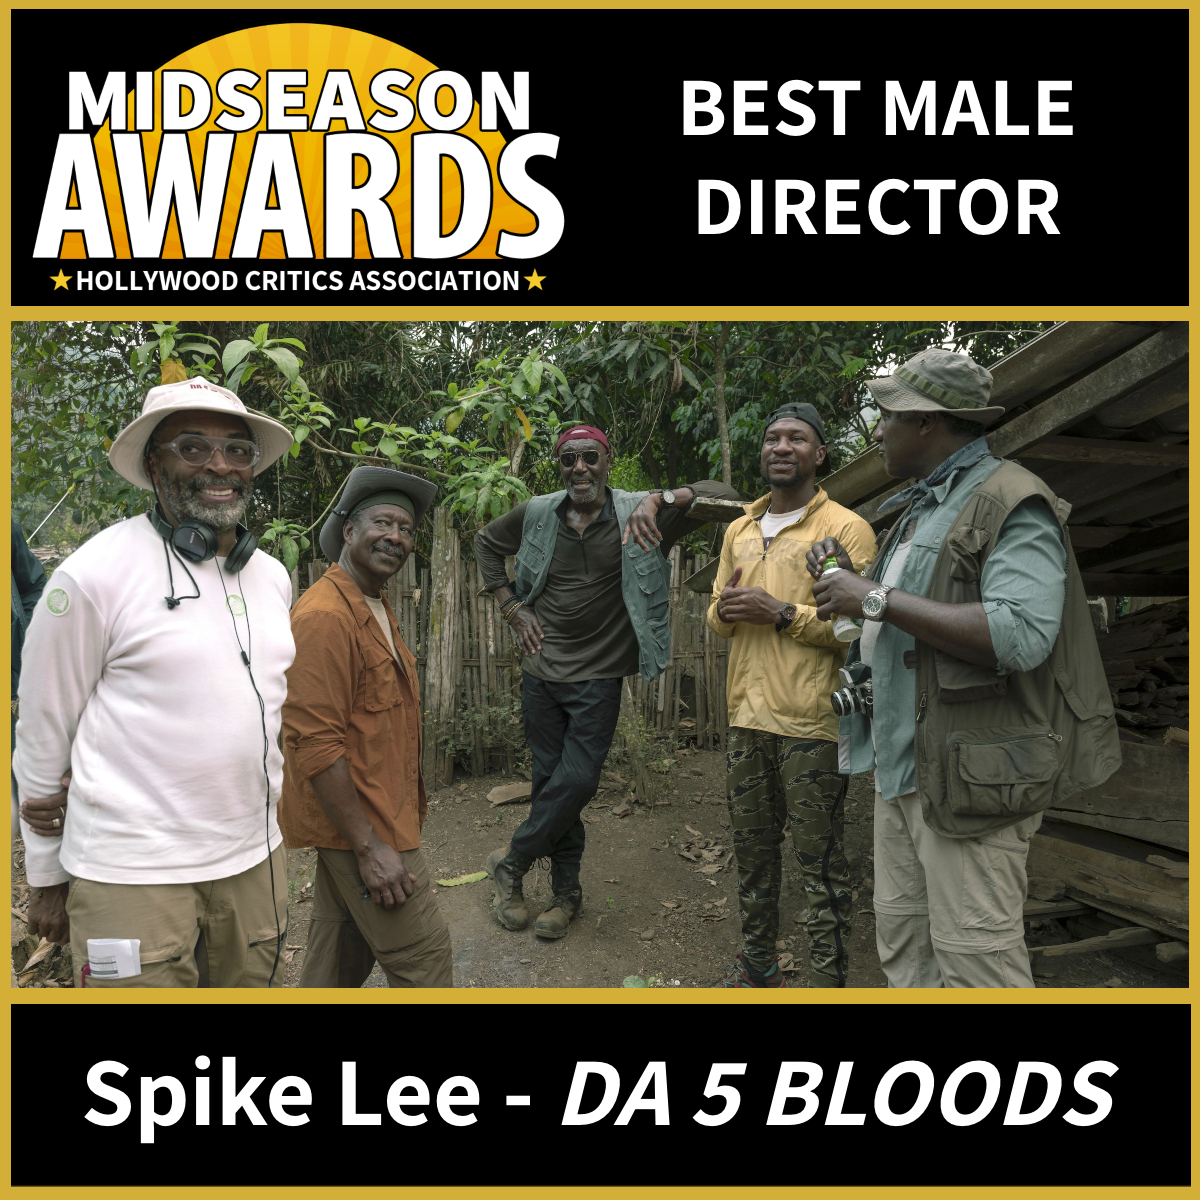 Best Male Director - Spike Lee for Da 5 Bloods